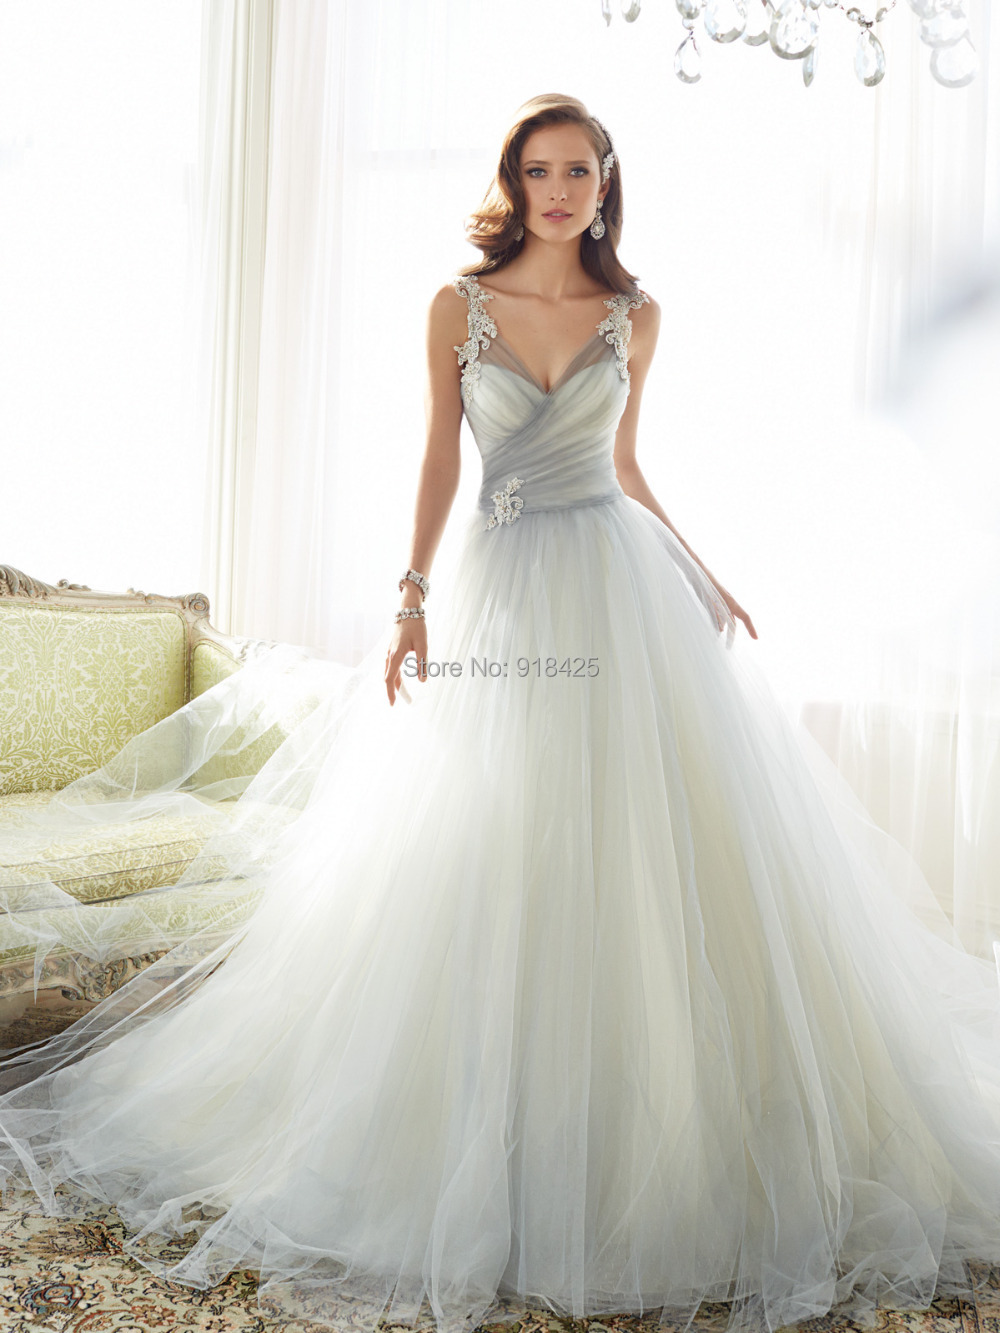 Most Beautiful Bridal Tulle Wedding Gown Fluffy A Line Light Gray ...